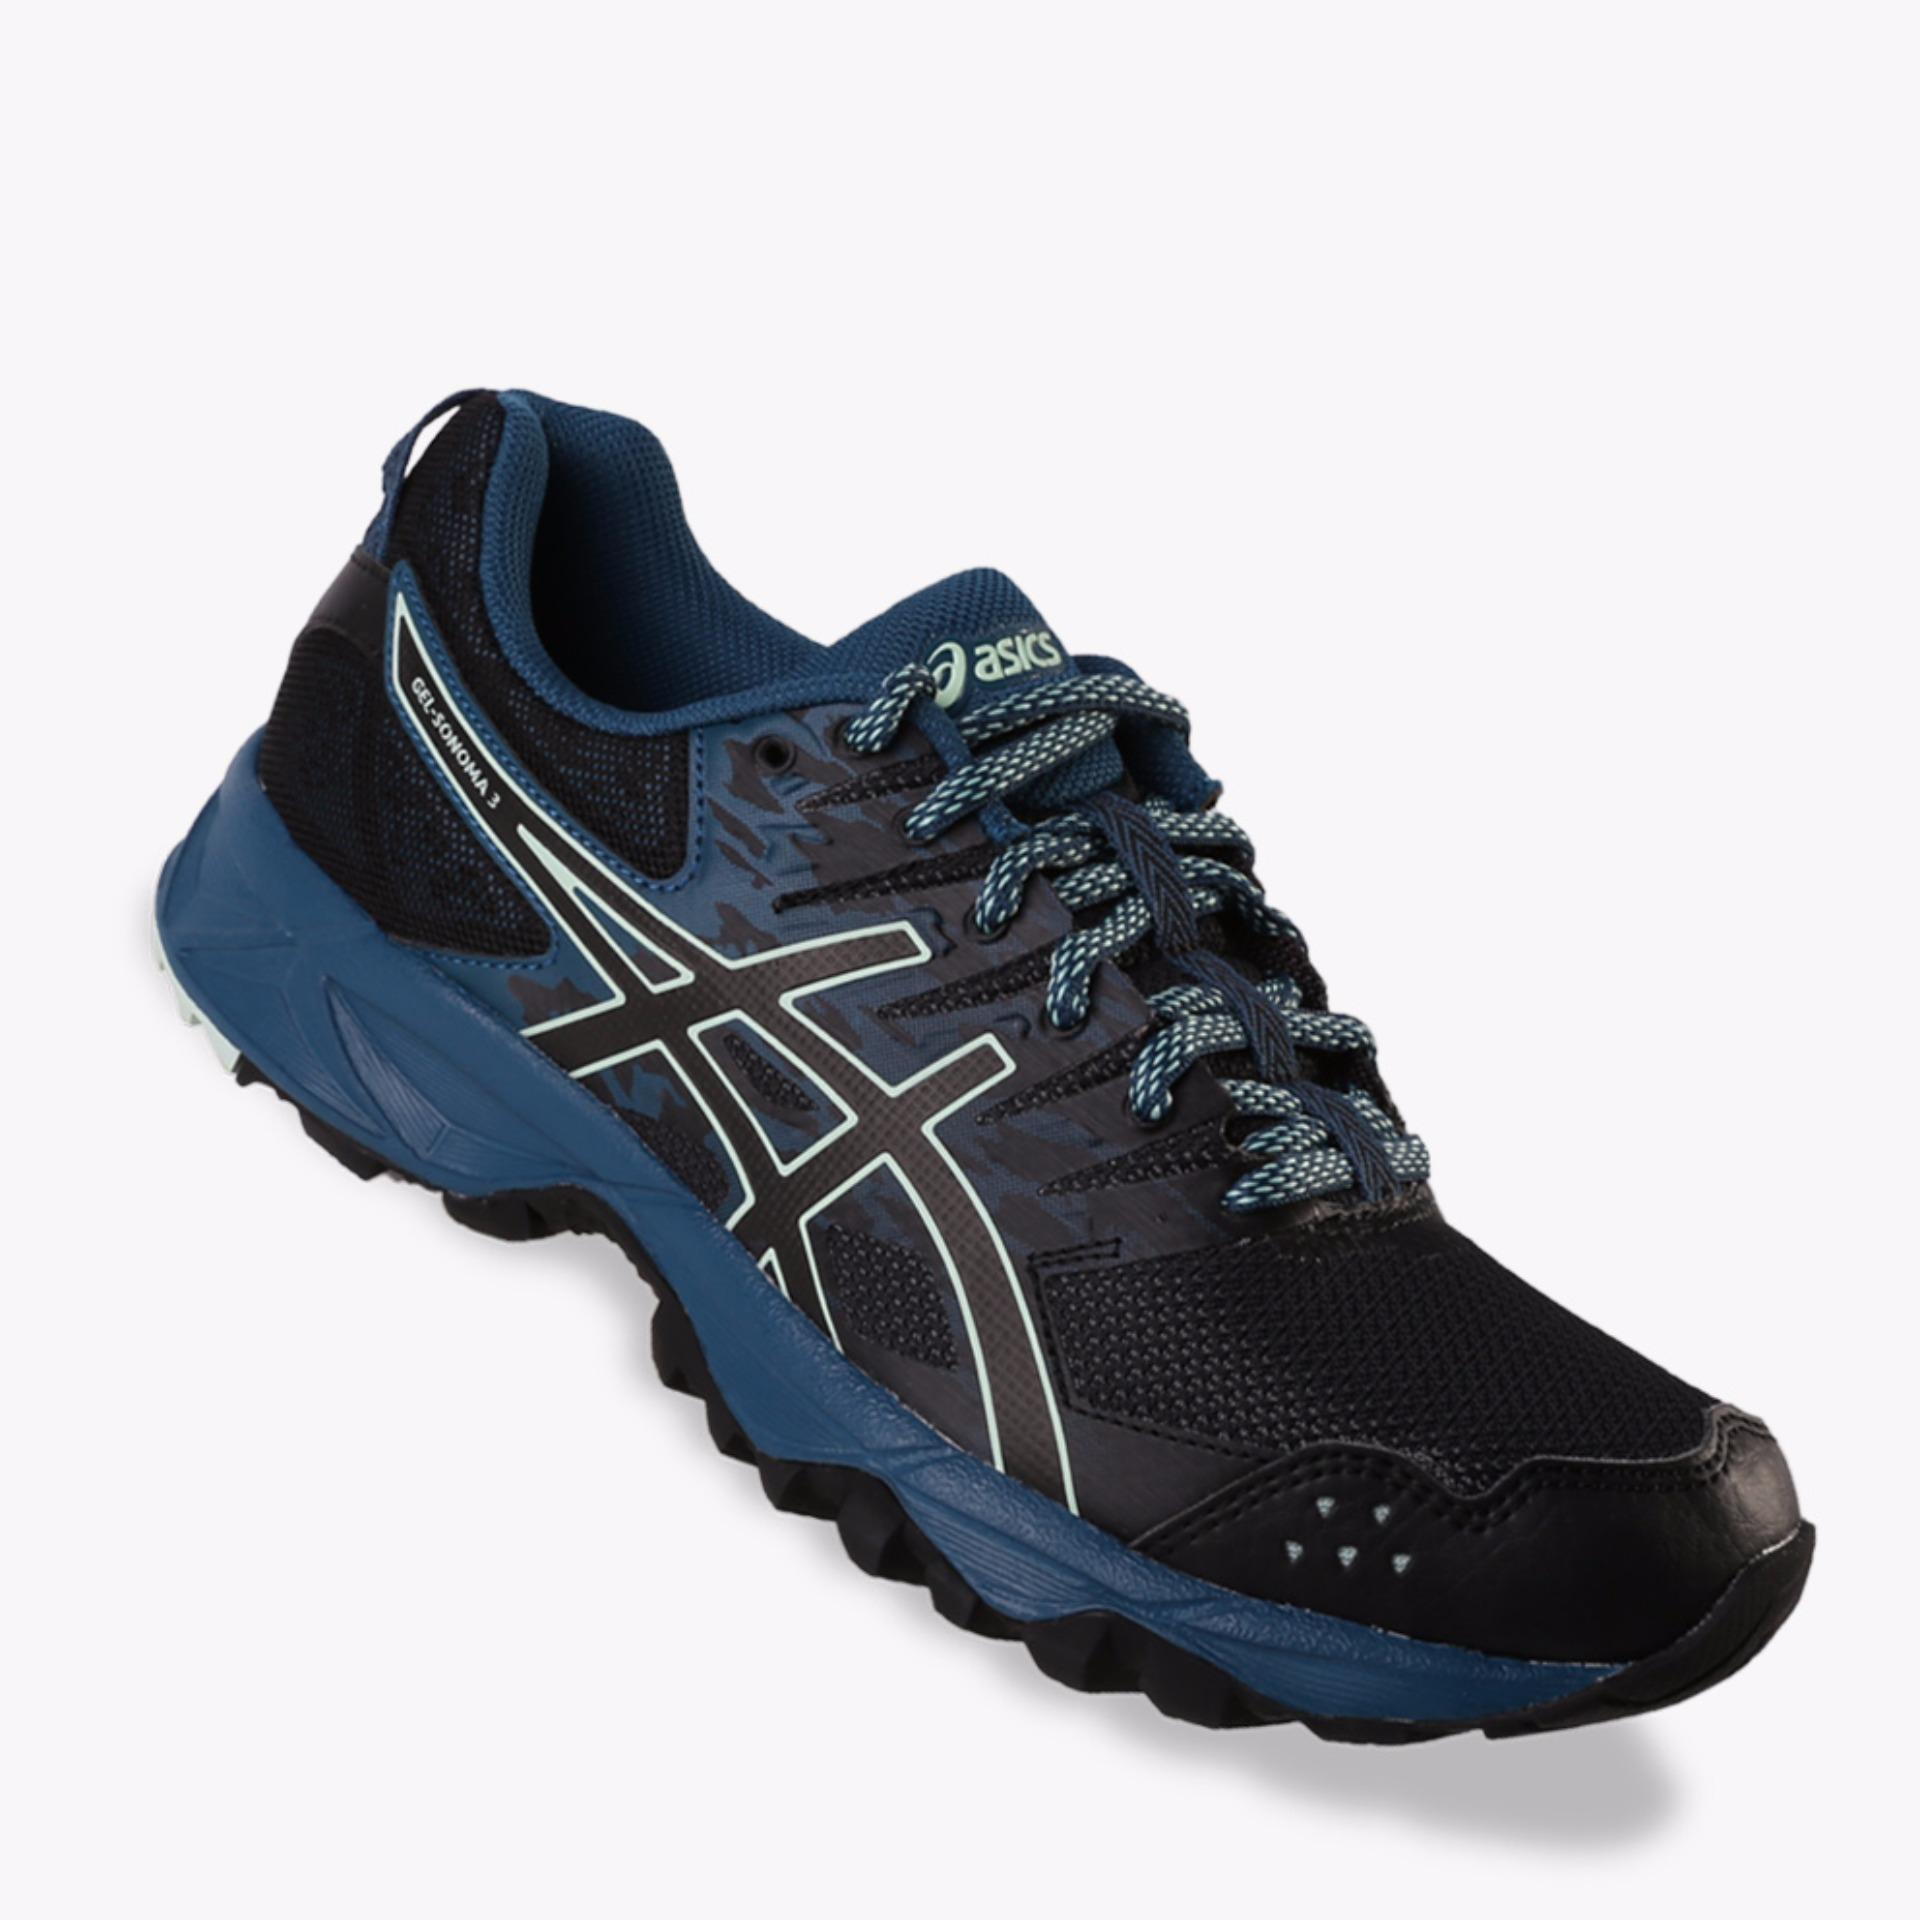 Asics Gel Sonoma 3 Women S Trail Shoes Navy Indonesia